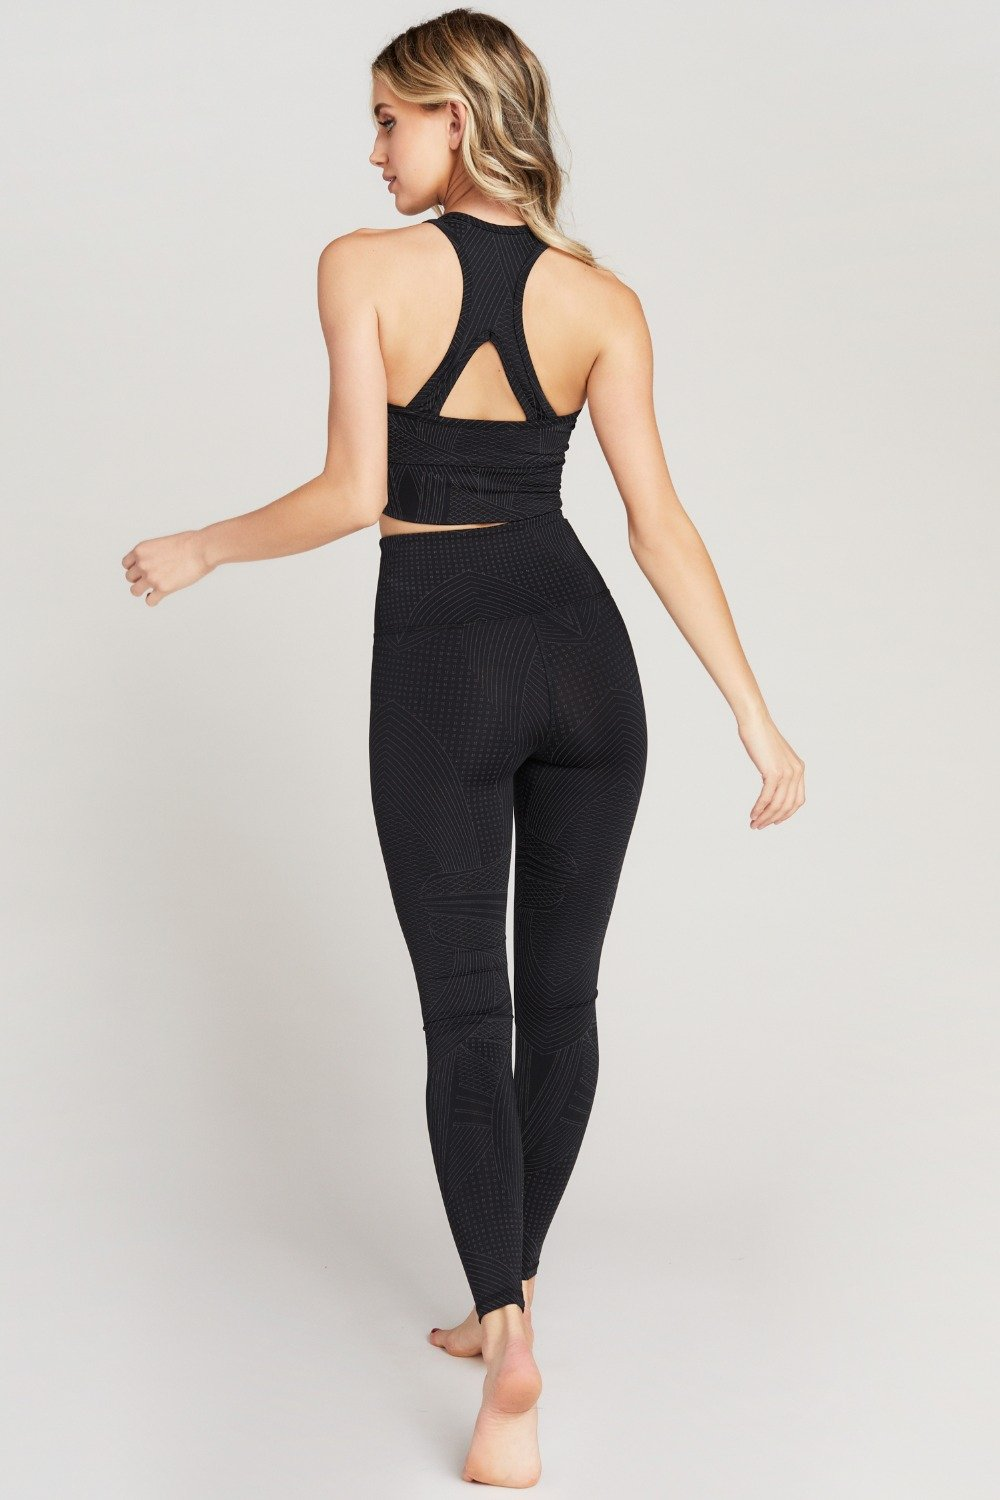 Clyde Sterling Legging